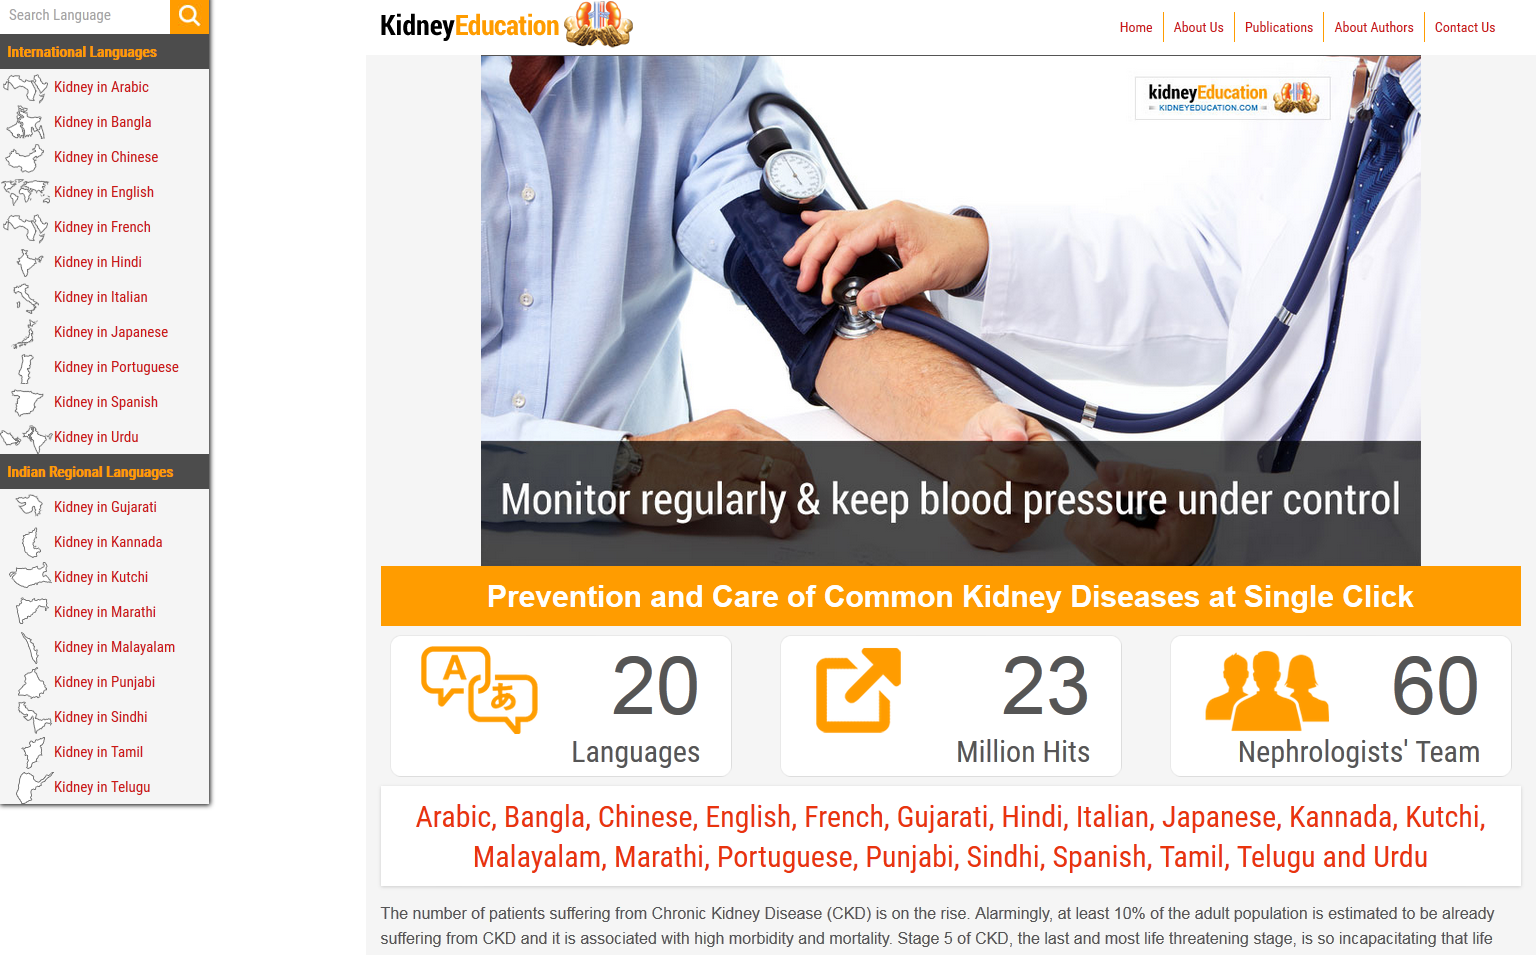 Kidney Education Website For Patients Translated In 20 Languages Renal Fellow Network